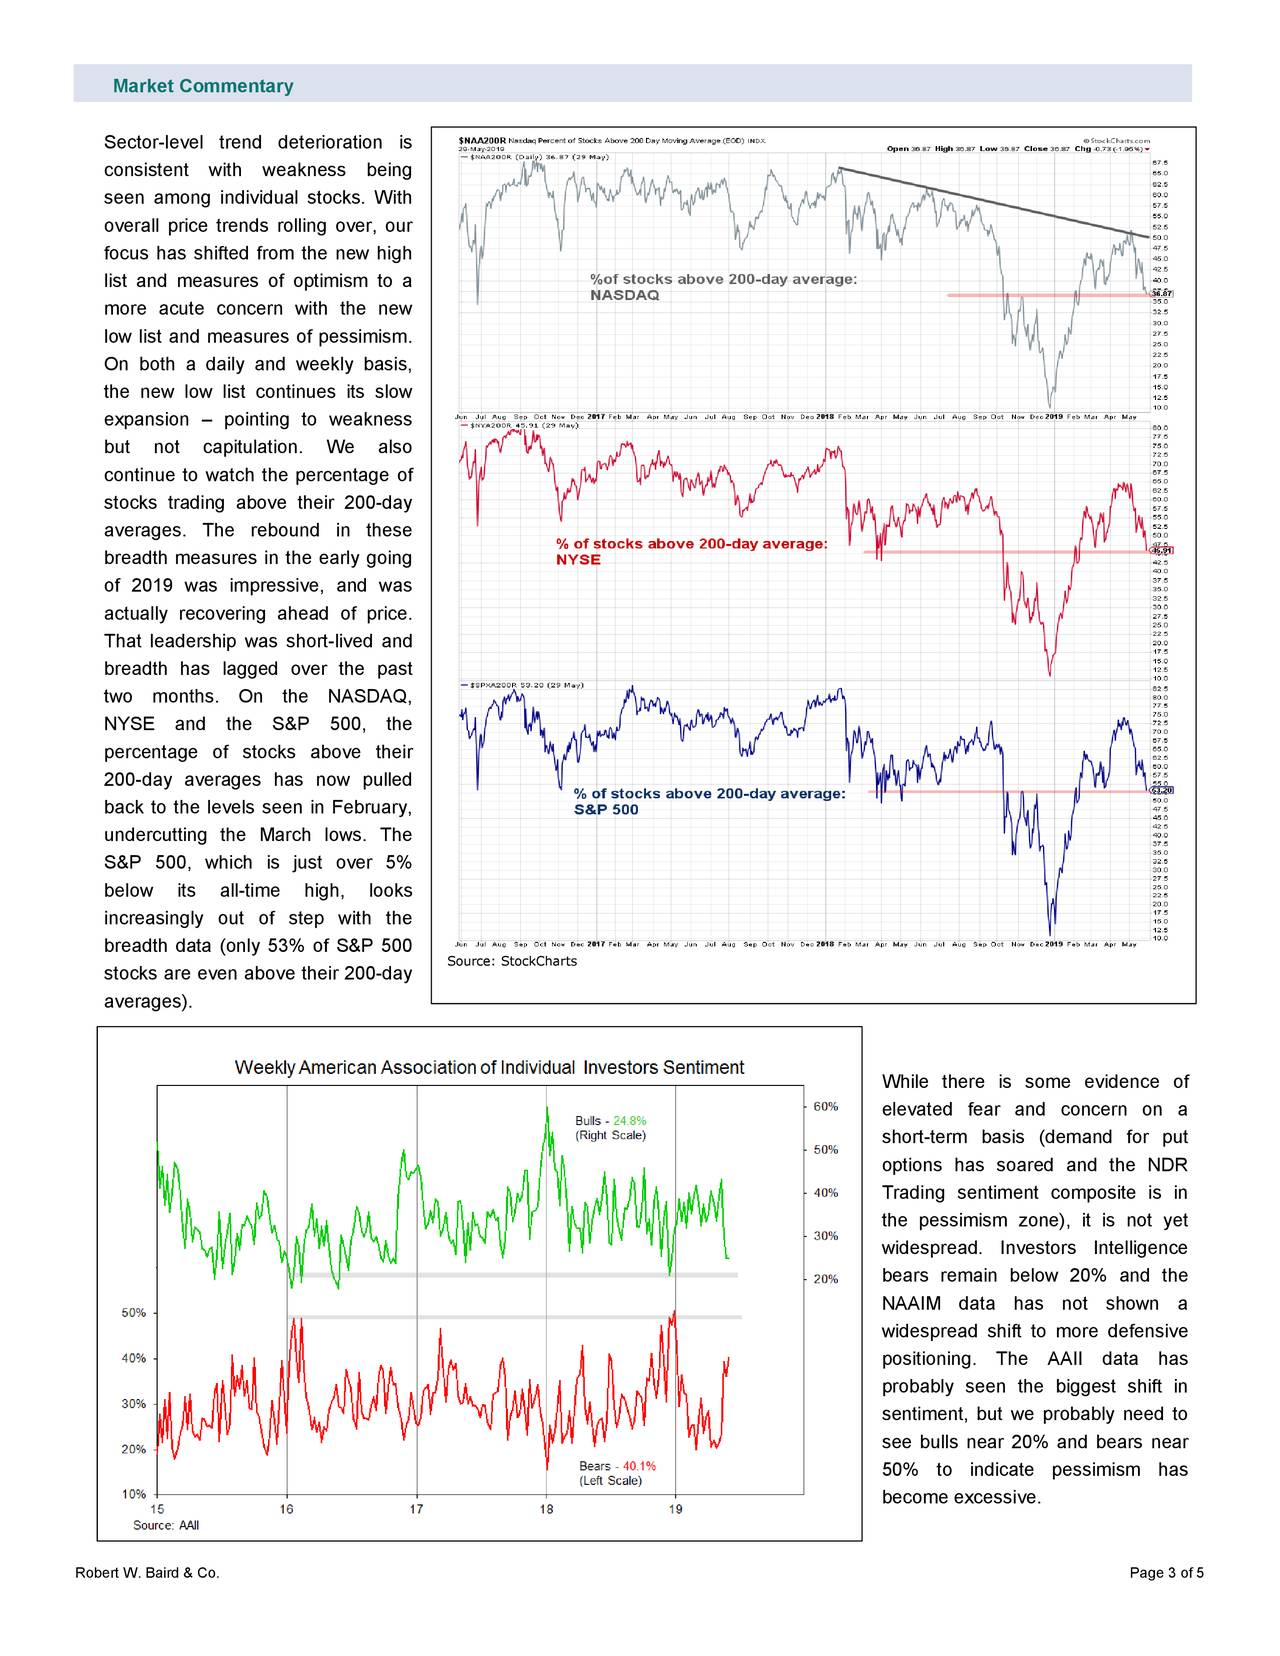 Sector-level trend deterioration is consistent with weakness being seen among individual stocks. With overall price trends rolling over, our focus has shifted from the new high list and measures of optimism to a more acute concern with the new low list and measures of pessimism. On both a daily and weekly basis, the new low list continues its slow expansion – pointing to weakness but not capitulation. We also continue to watch the percentage of stocks trading above their 200-day averages. The rebound in these breadth measures in the early going of 2019 was impressive, and was actually recovering ahead of price. That leadership was short -lived and breadth has lagged over the past two months. On the NASDAQ, NYSE and the S&P 500, the percentage of stocks above their 200-day averages has now pulled back to the levels seen in February, undercutting the March lows. The S&P 500, which is just over 5% below its all -time high, looks increasingly out of step with the breadth data (only 53% of S&P 500 Source: StockCharts stocks are even above their 200-day averages). While there is some evidence of elevated fear and concern on a short-term basis (demand for put options has soared and the NDR Trading sentiment composite is in the pessimism zone), it is not yet widespread. Investors Intelligence bears remain below 20% and the NAAIM data has not shown a widespread shift to more defensive positioning. The AAII data has probably seen the biggest shift in sentiment, but we probably need to see bulls near 20% and bears near 50% to indicate pessimism has become excessive. Robert W. Baird & Co. Page 3 of 5